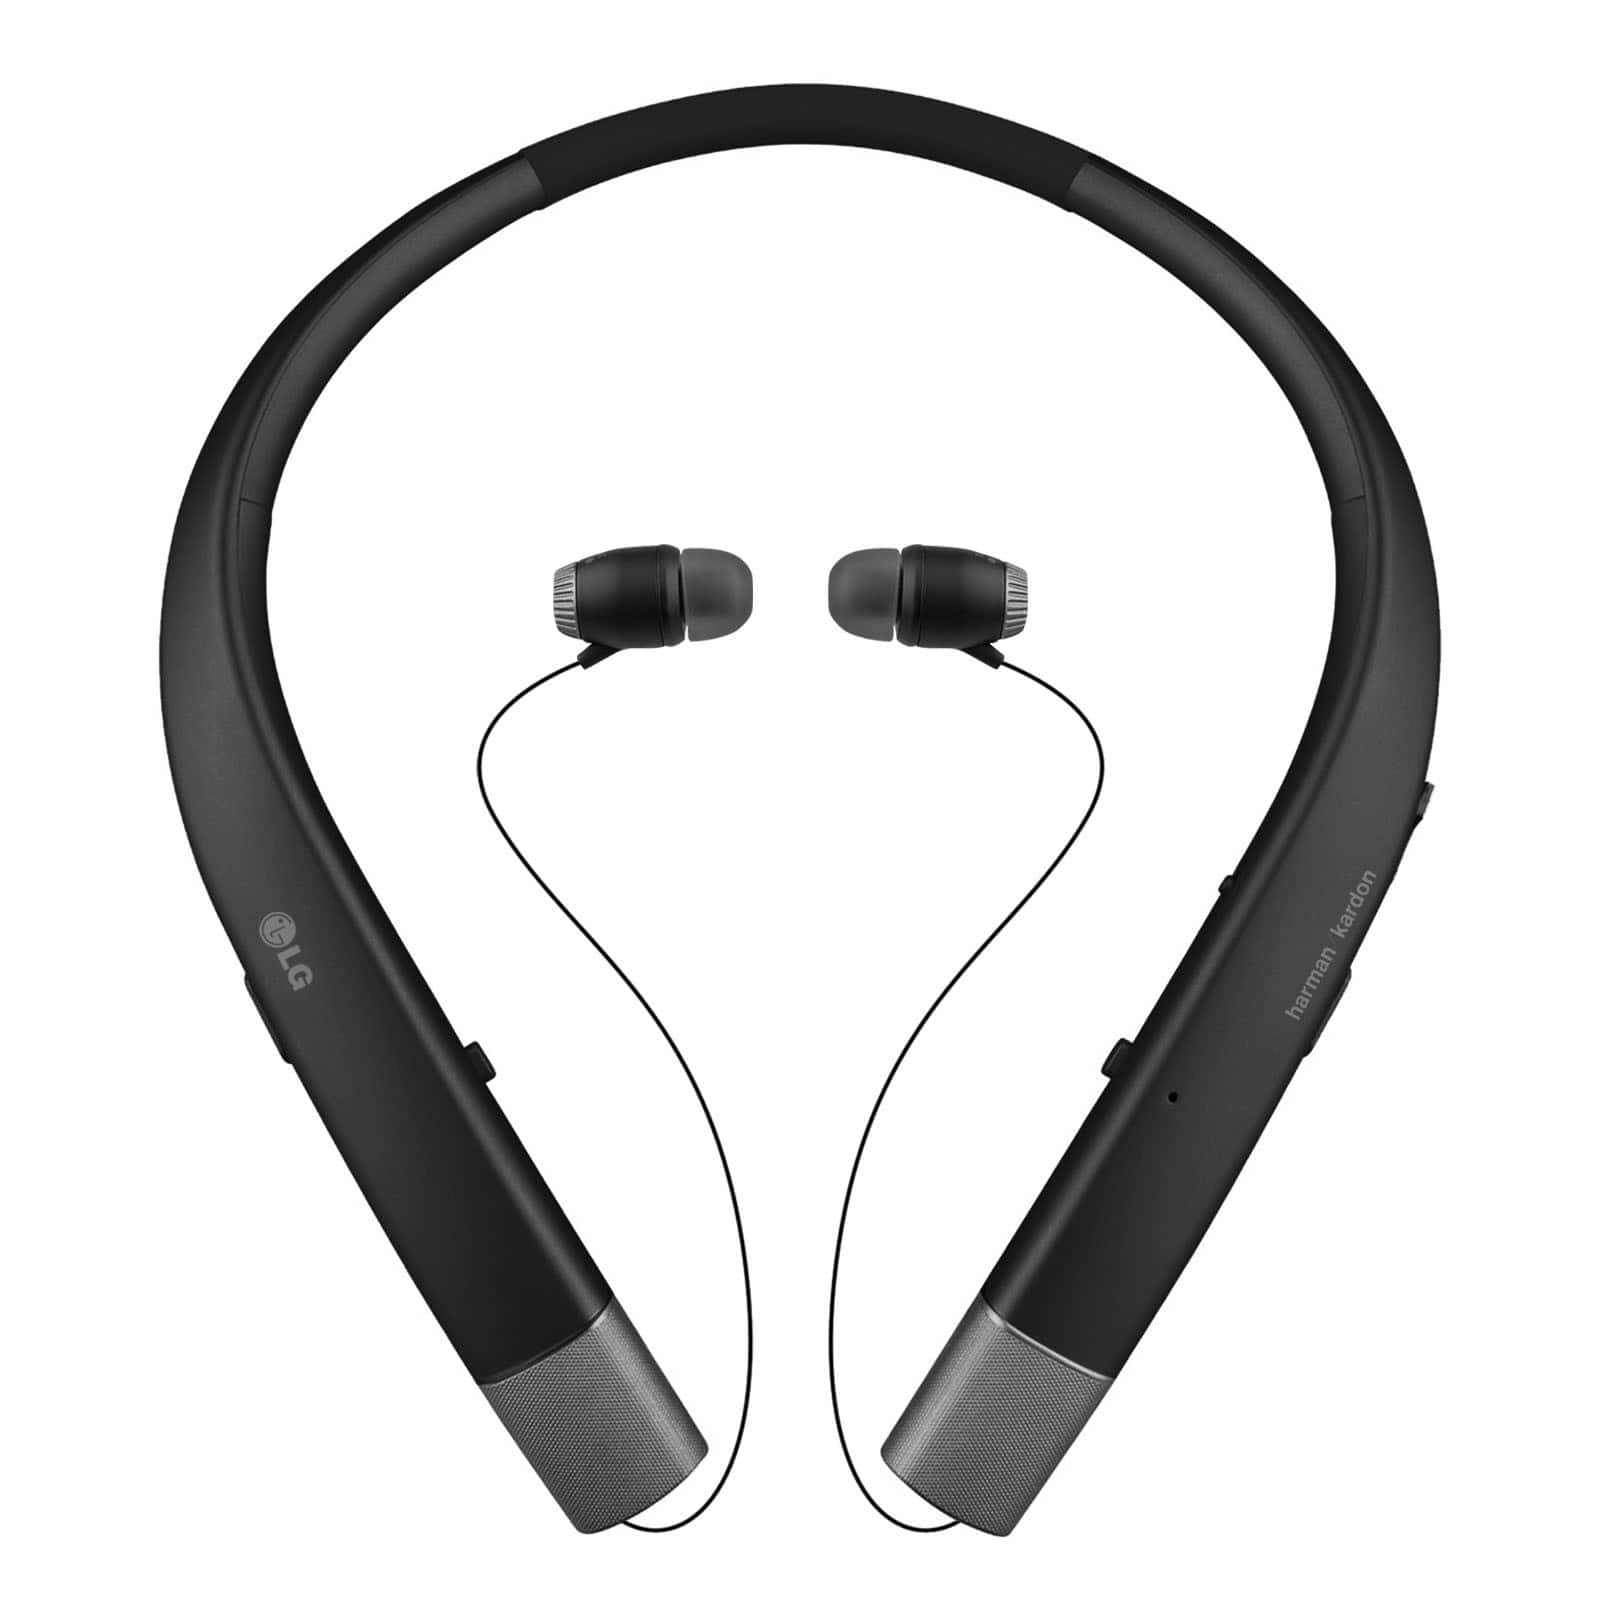 LG HBS-920 Tone Infinim Wireless Bluetooth Stereo Headset $50 + free shipping